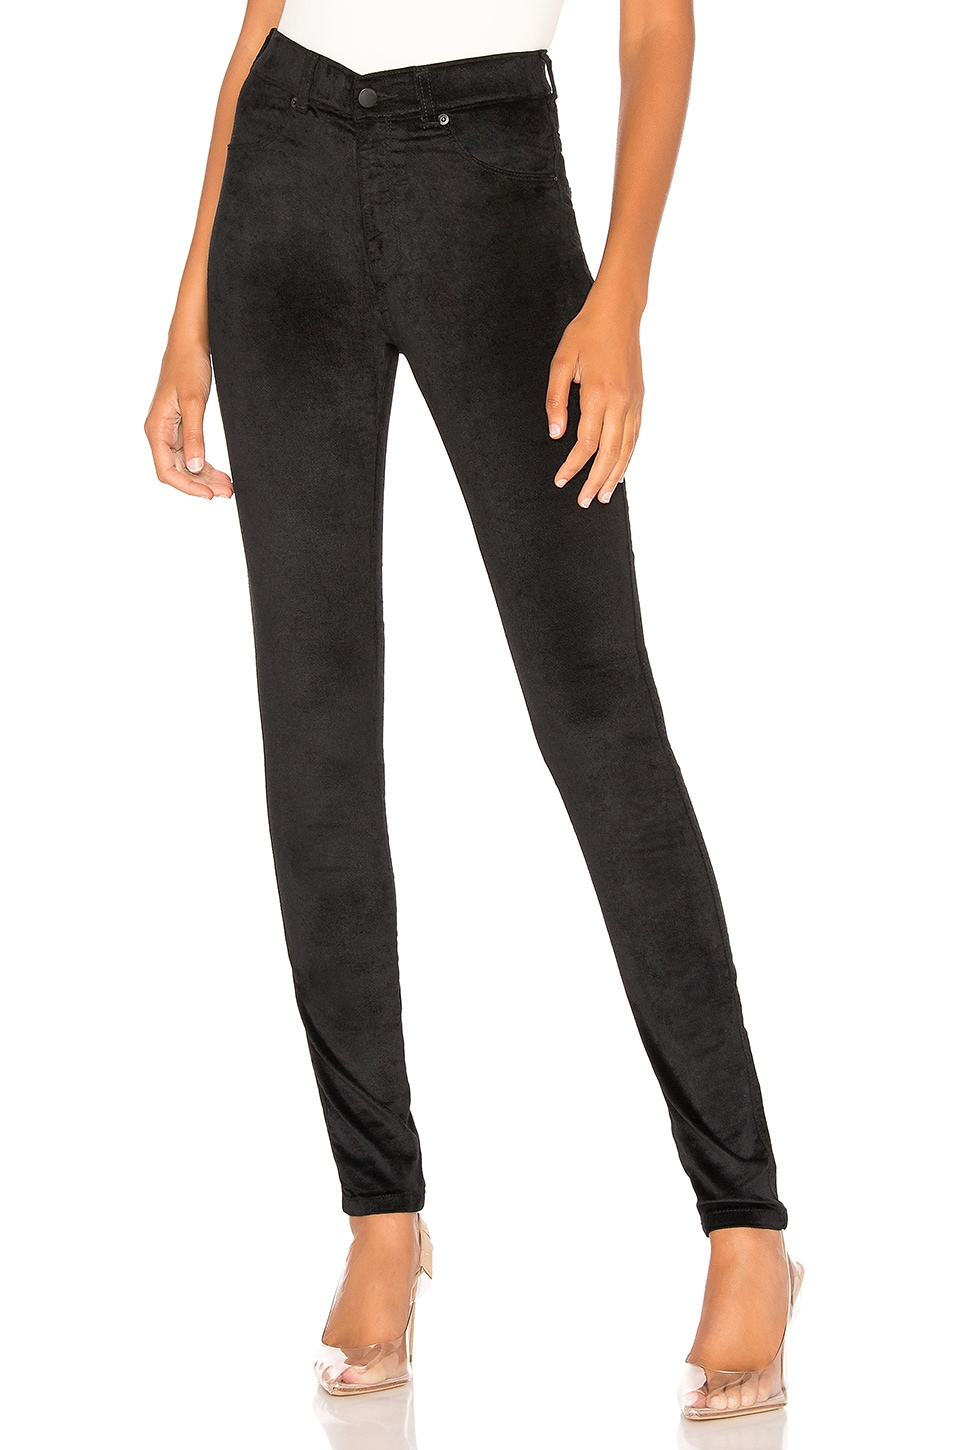 Dr. Denim Plenty Velvet Pant in Deep Black Velvet